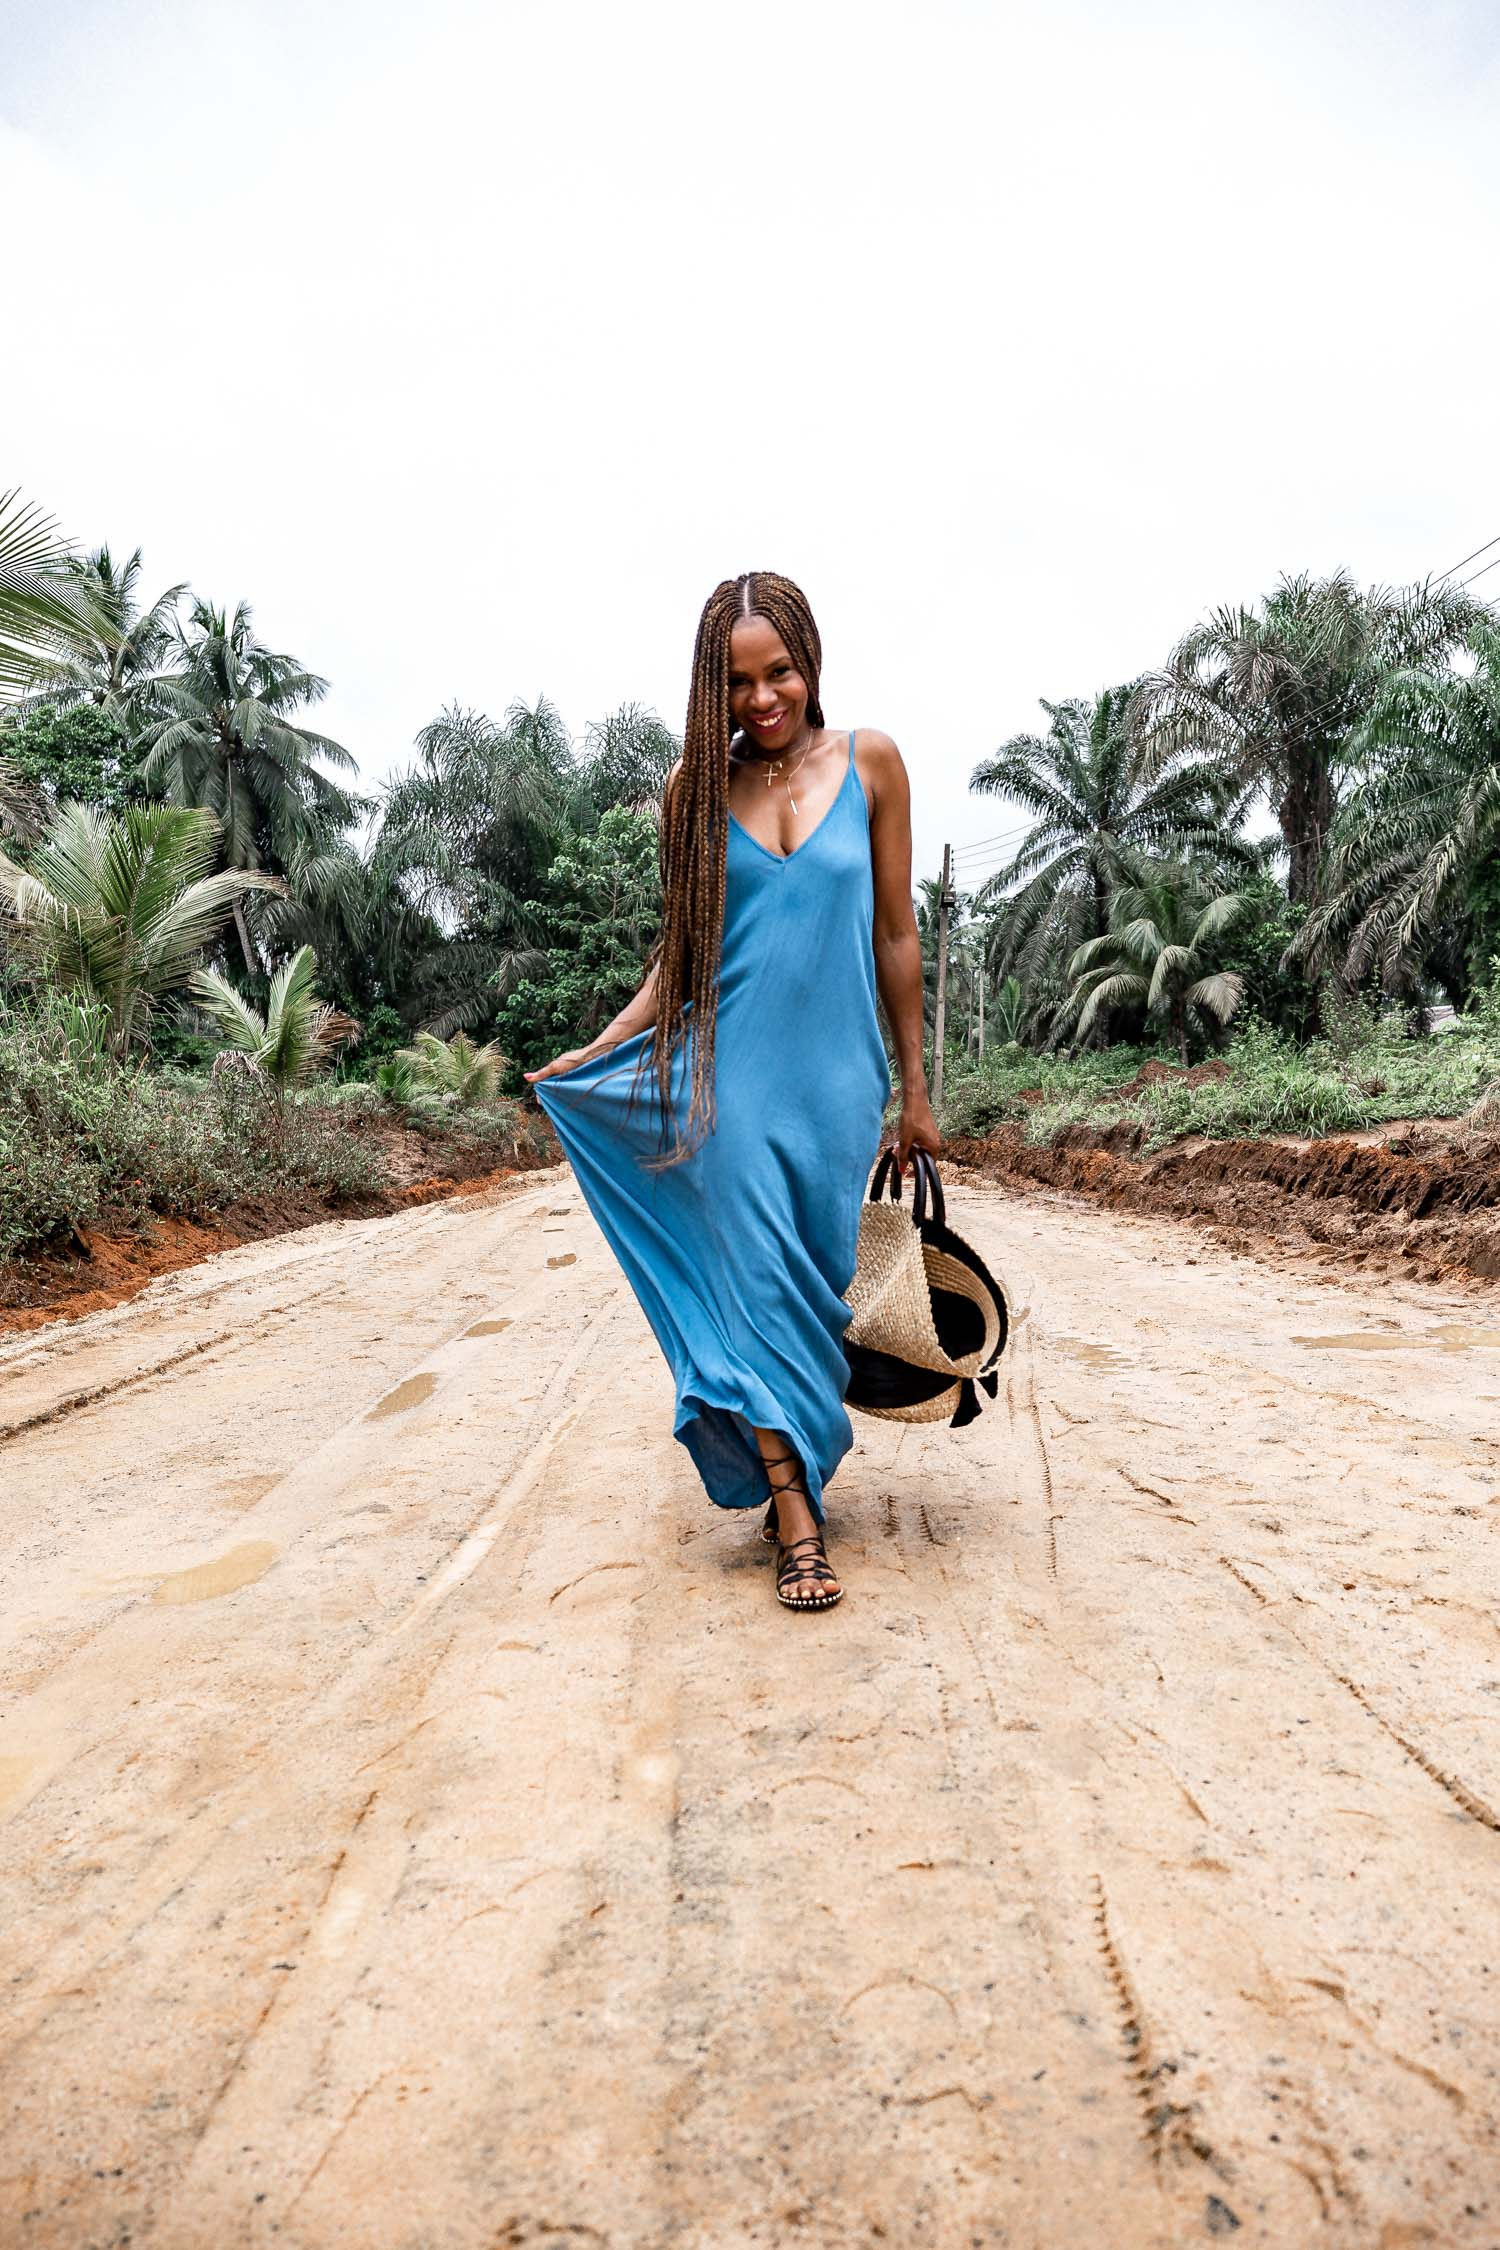 Atlanta fashion and lifestyle blogger Monica awe-etuk wearing a blue maxi dress in nigeria, nordstrom rack dresses, black sandals, straw bag-3